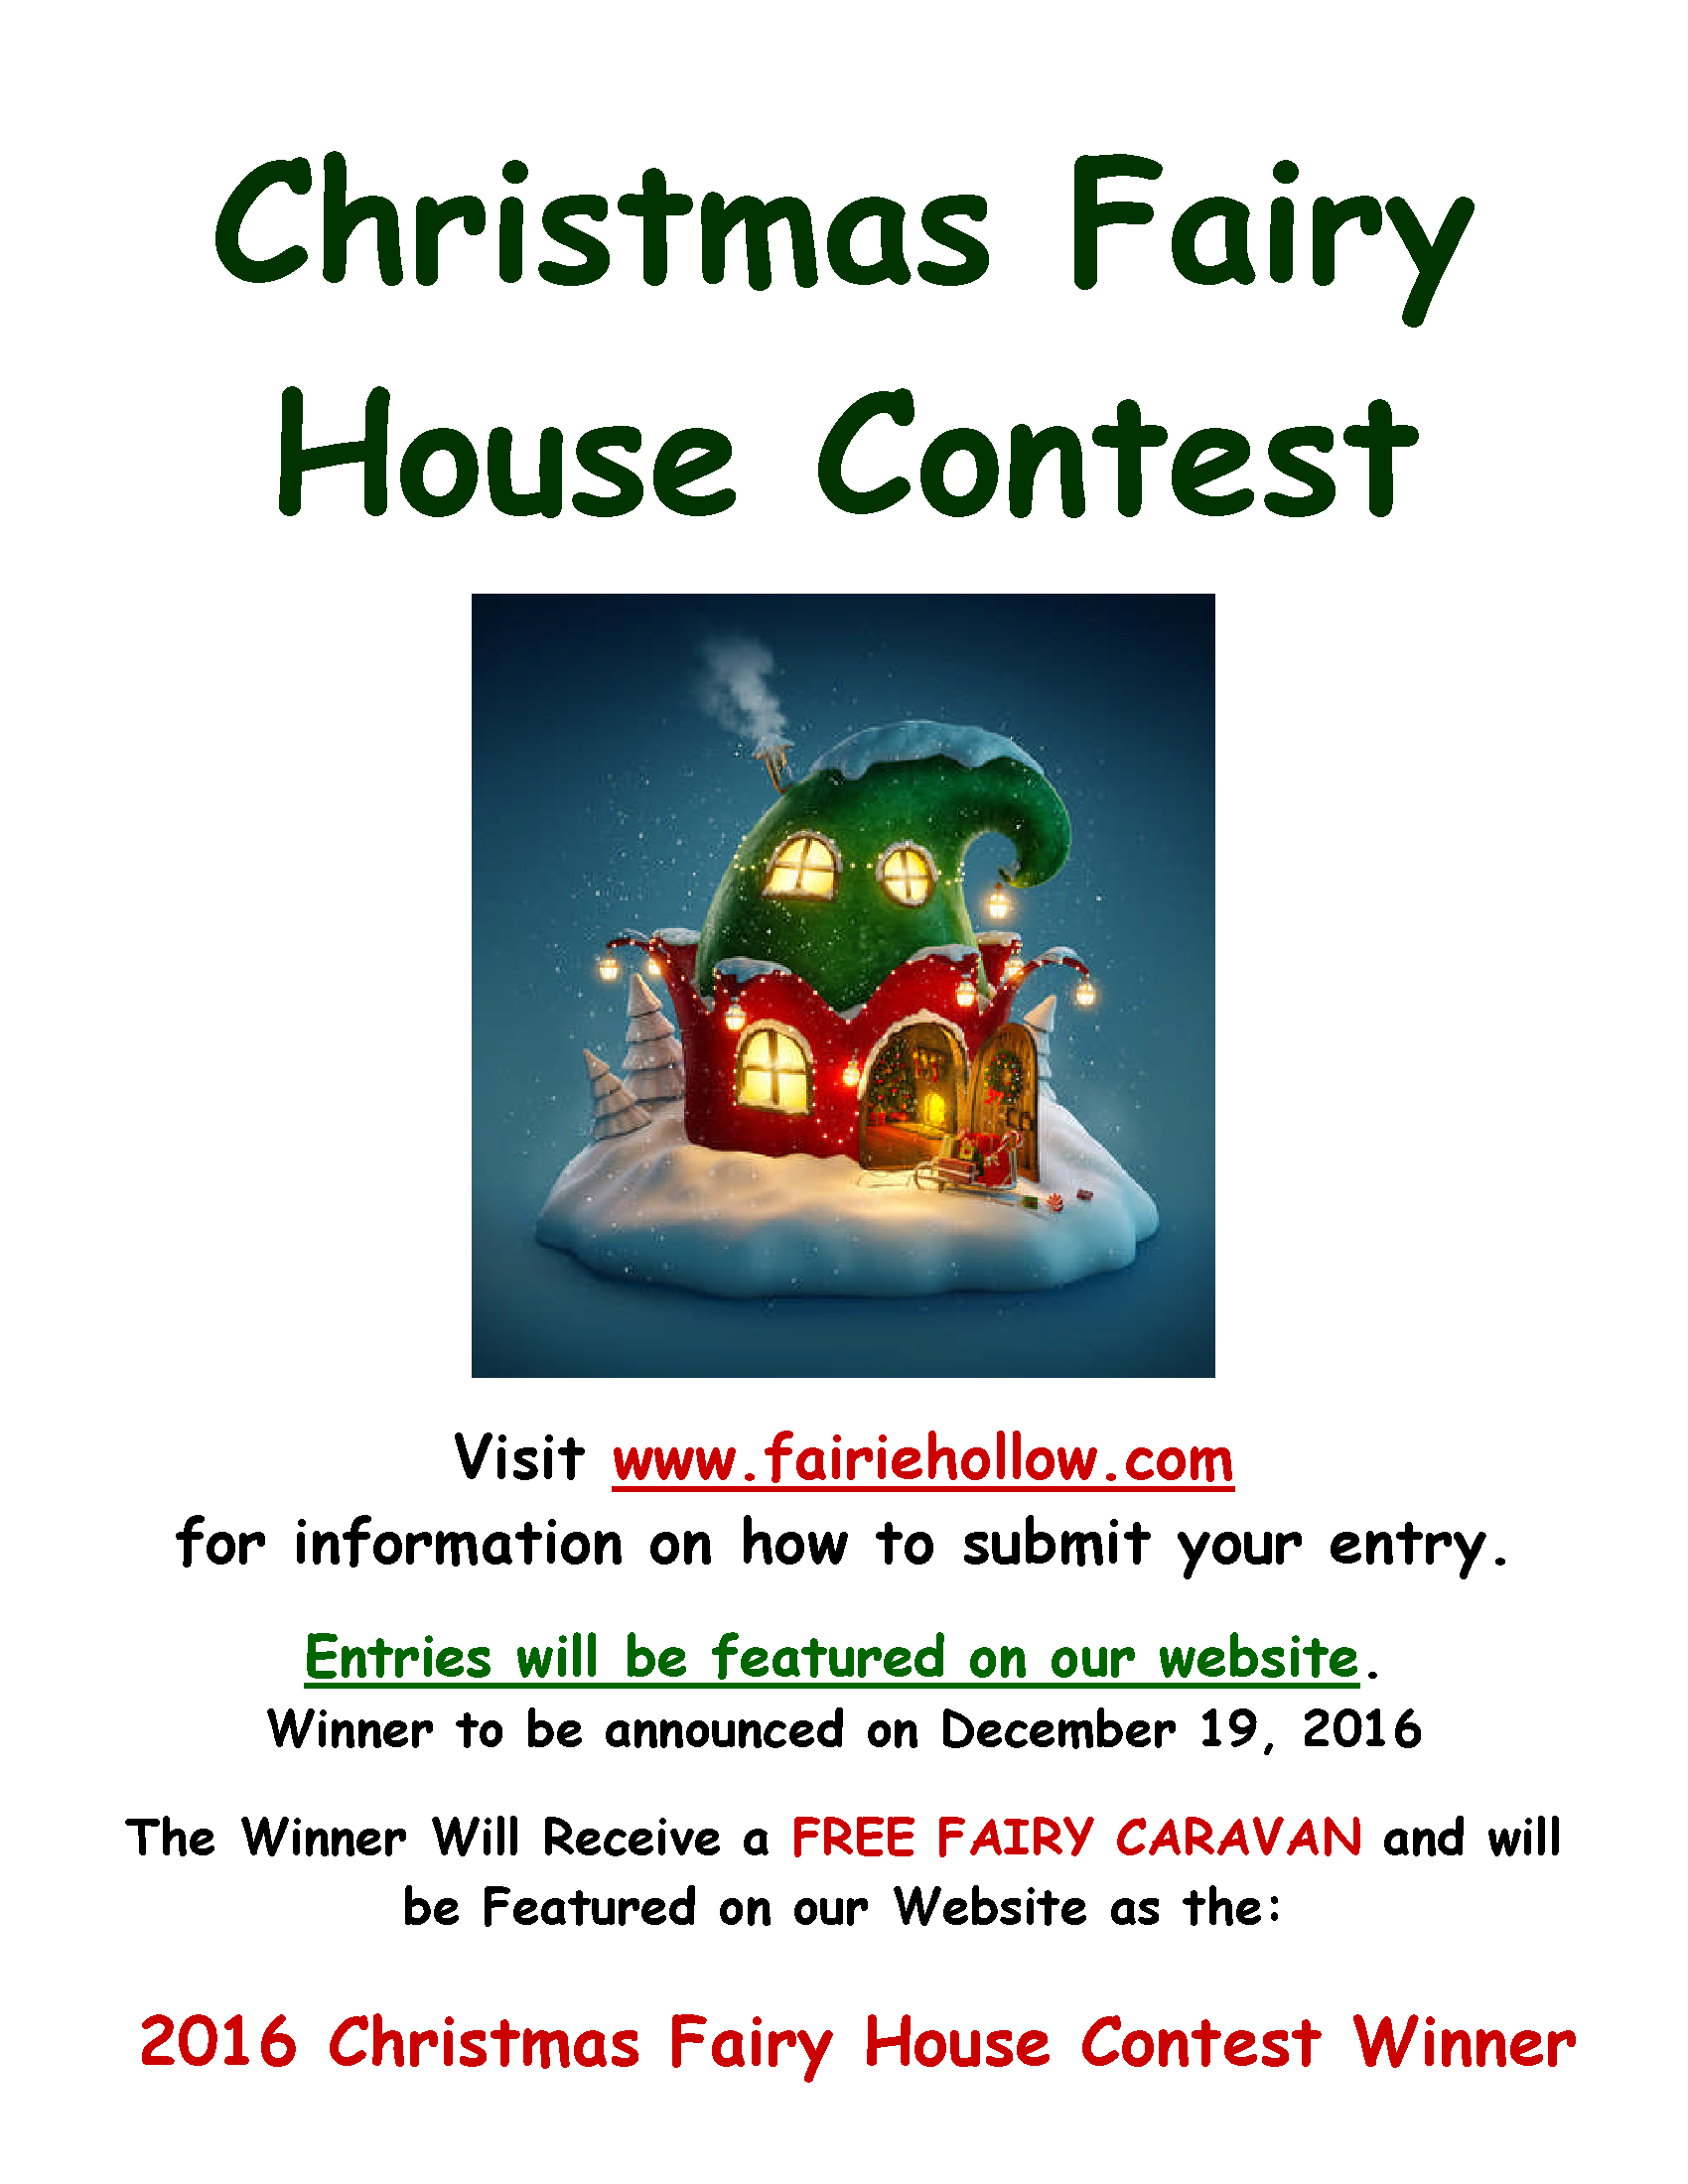 Christmas Fairy House Contest 2016